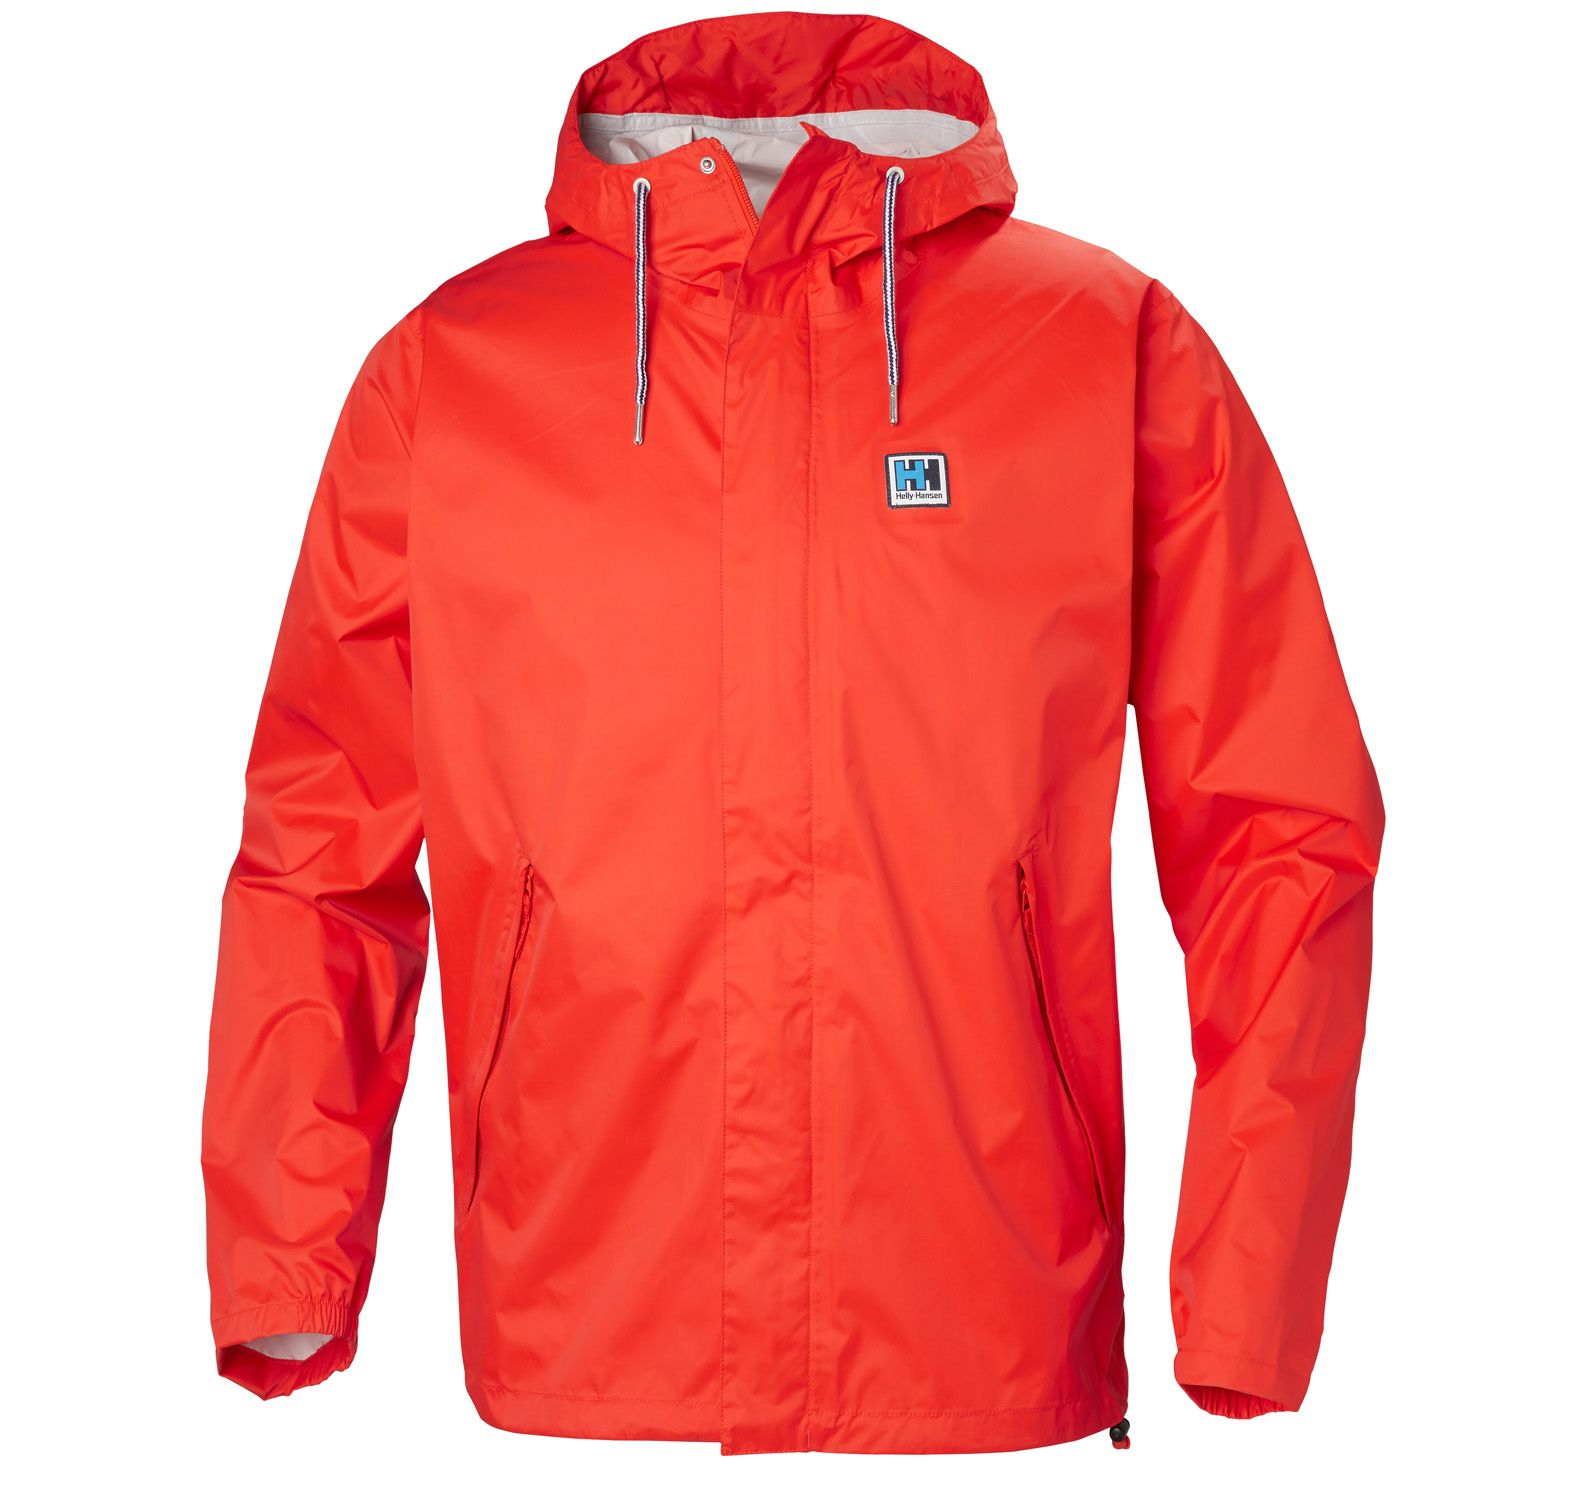 HH MOUNTAIN JACKET, 135 GRENADINE, L